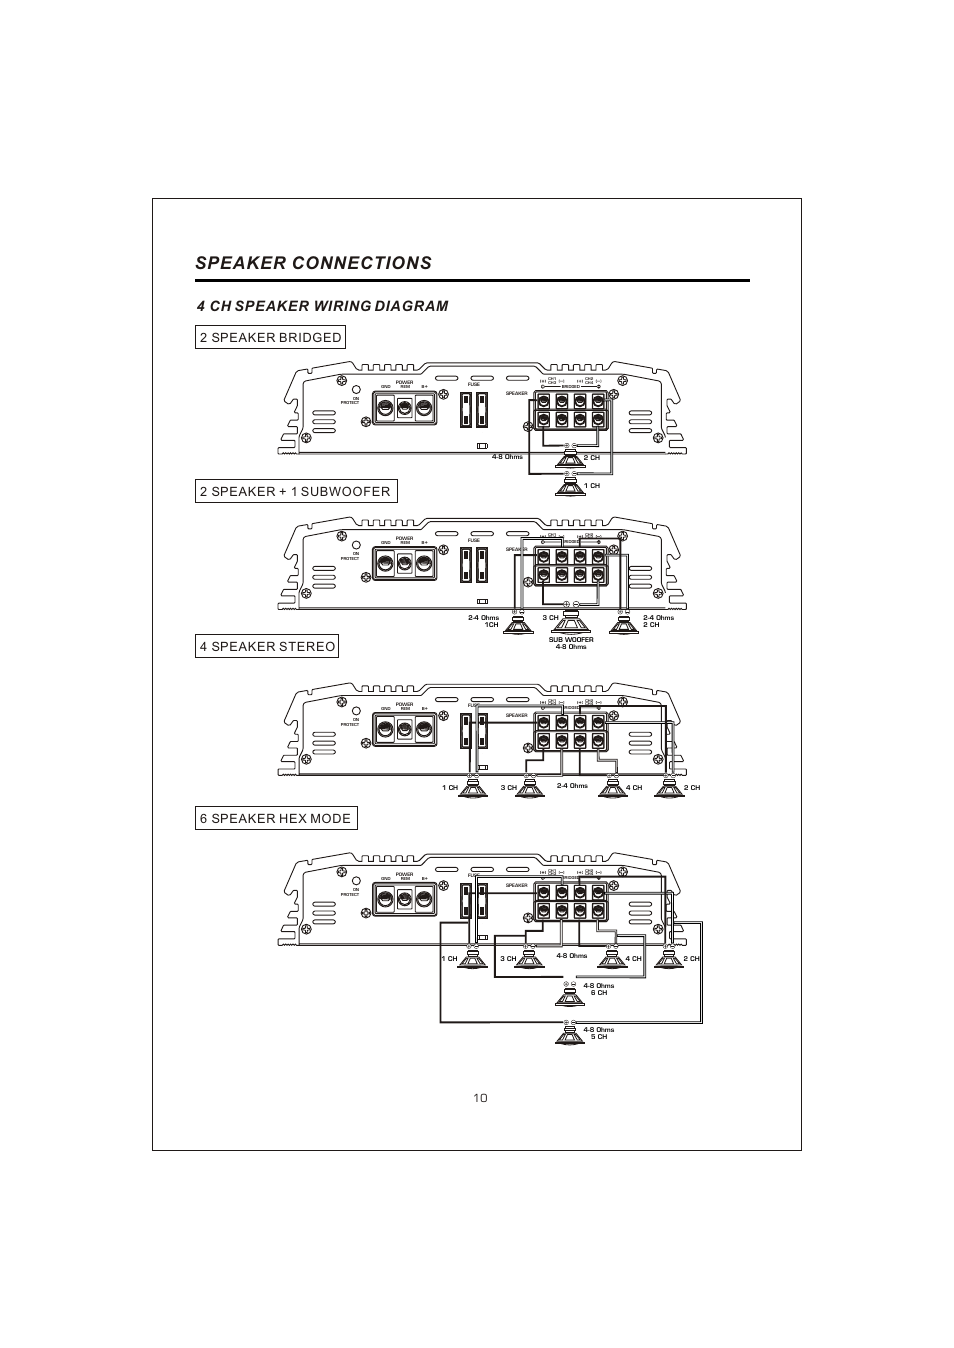 hight resolution of  12 speaker connections 4 ch speaker wiring diagram interfire audio tunn t 2130 user manual page 12 20